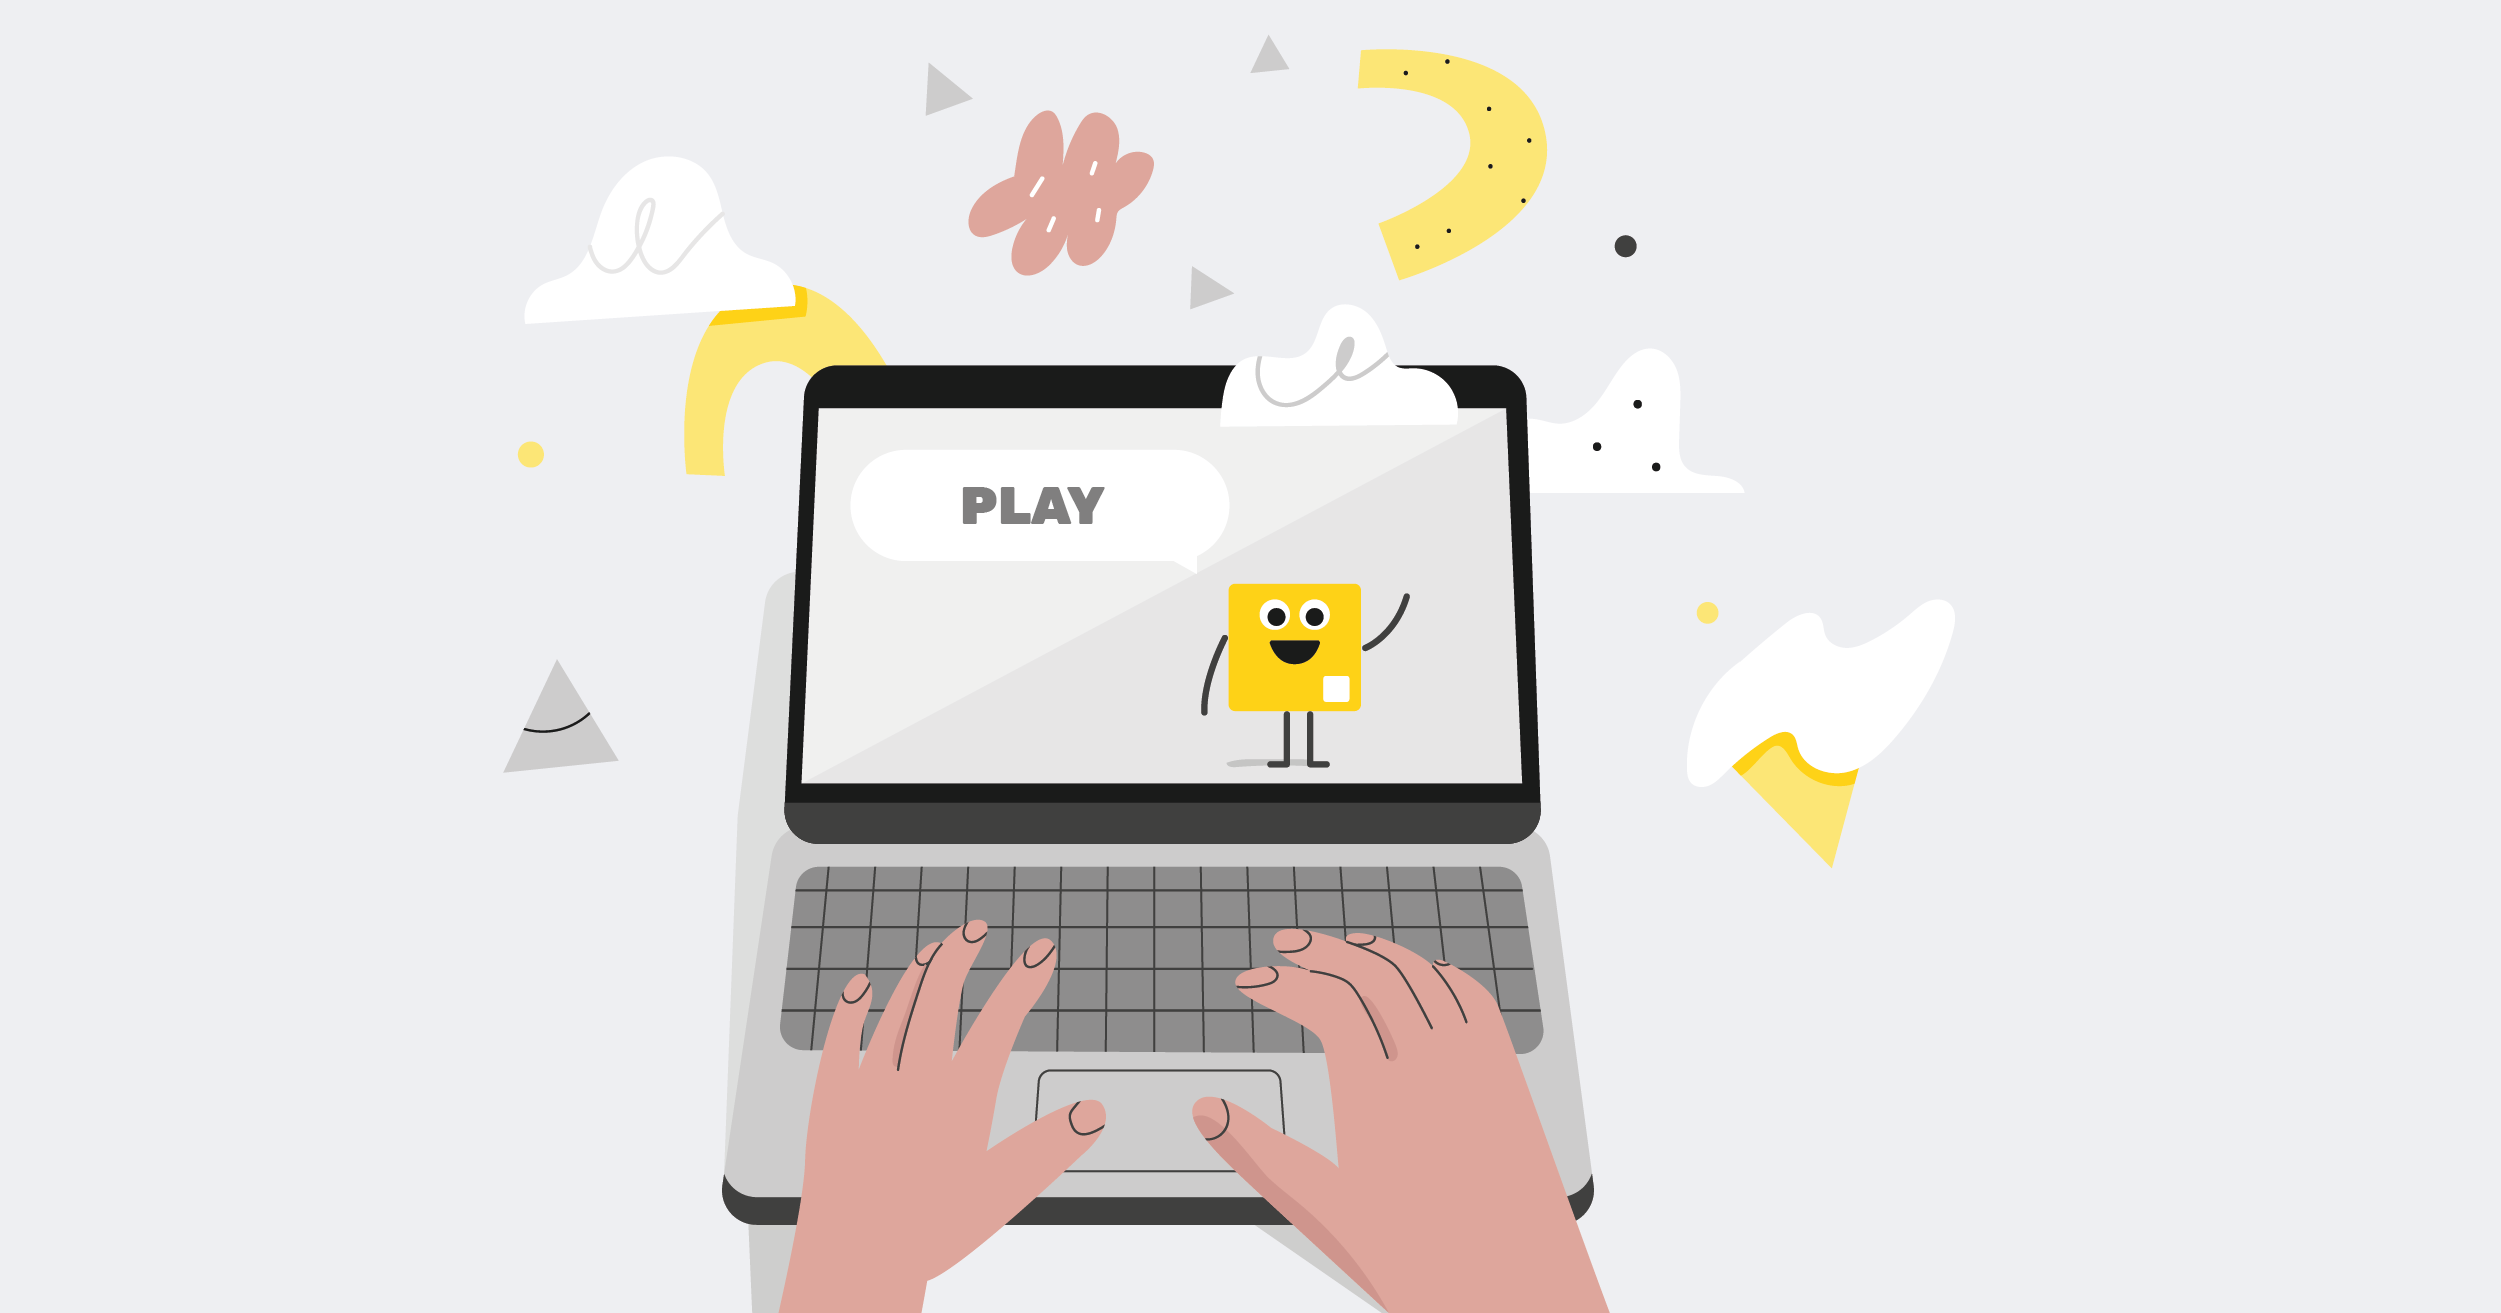 game on a laptop with invision